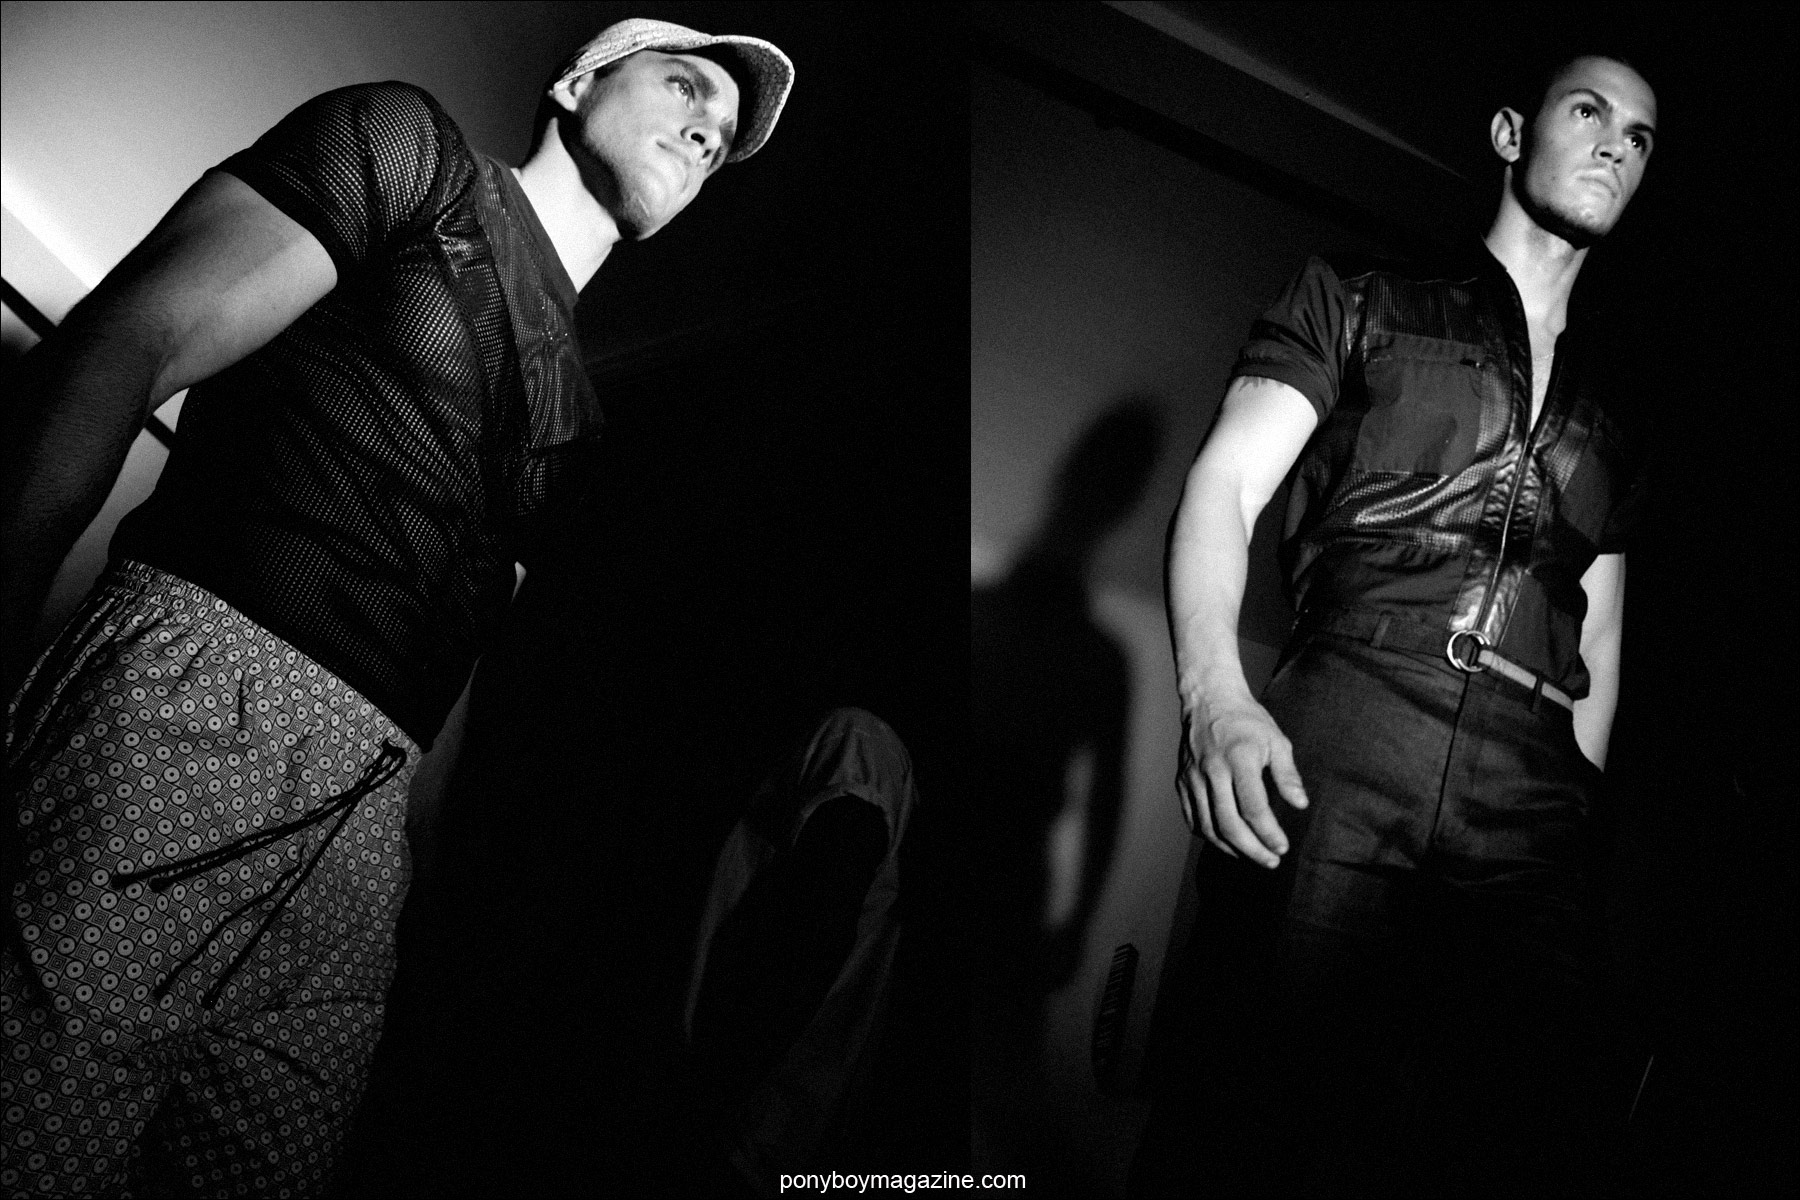 Male models on the runway for Martin Keehn S/S15. Photographs by Alexander Thompson for Ponyboy Magazine.